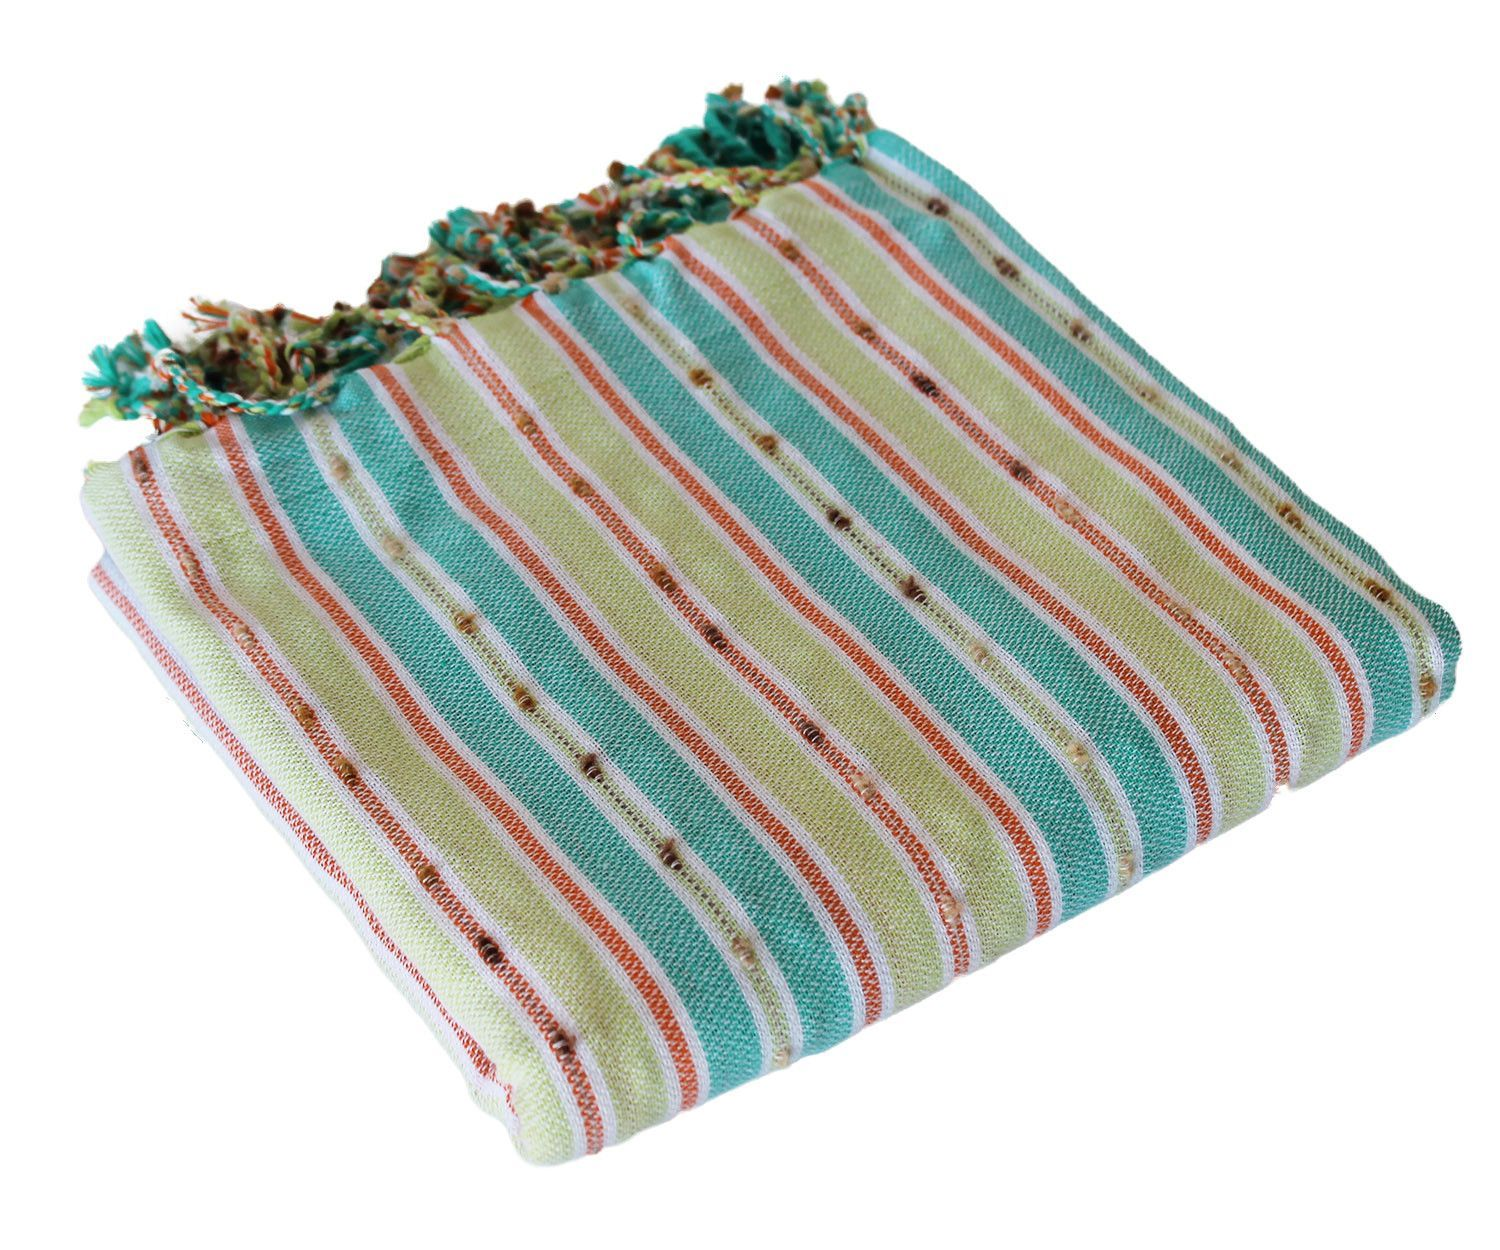 Mint Green Bath Towels Impressive Mint Green Designer Peshtemal Turkish Towel  Mint Green Towels And Inspiration Design